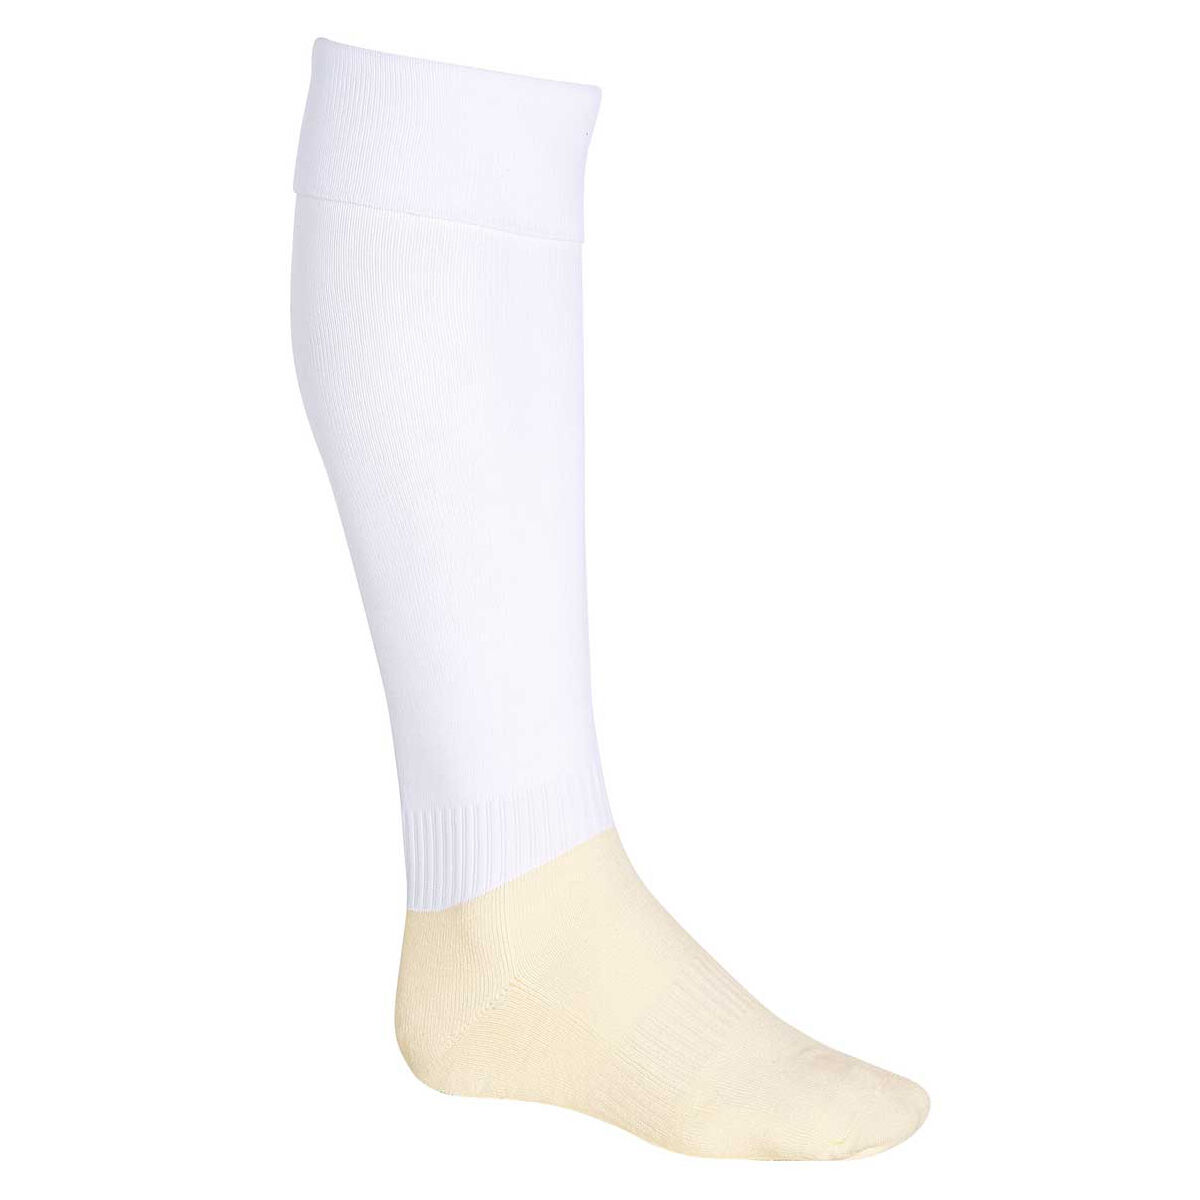 *BRAND NEW* QUALITY MENS ADULTS 7-11 FOOTBALL SOCCER RUGBY SPORTS SOCKS